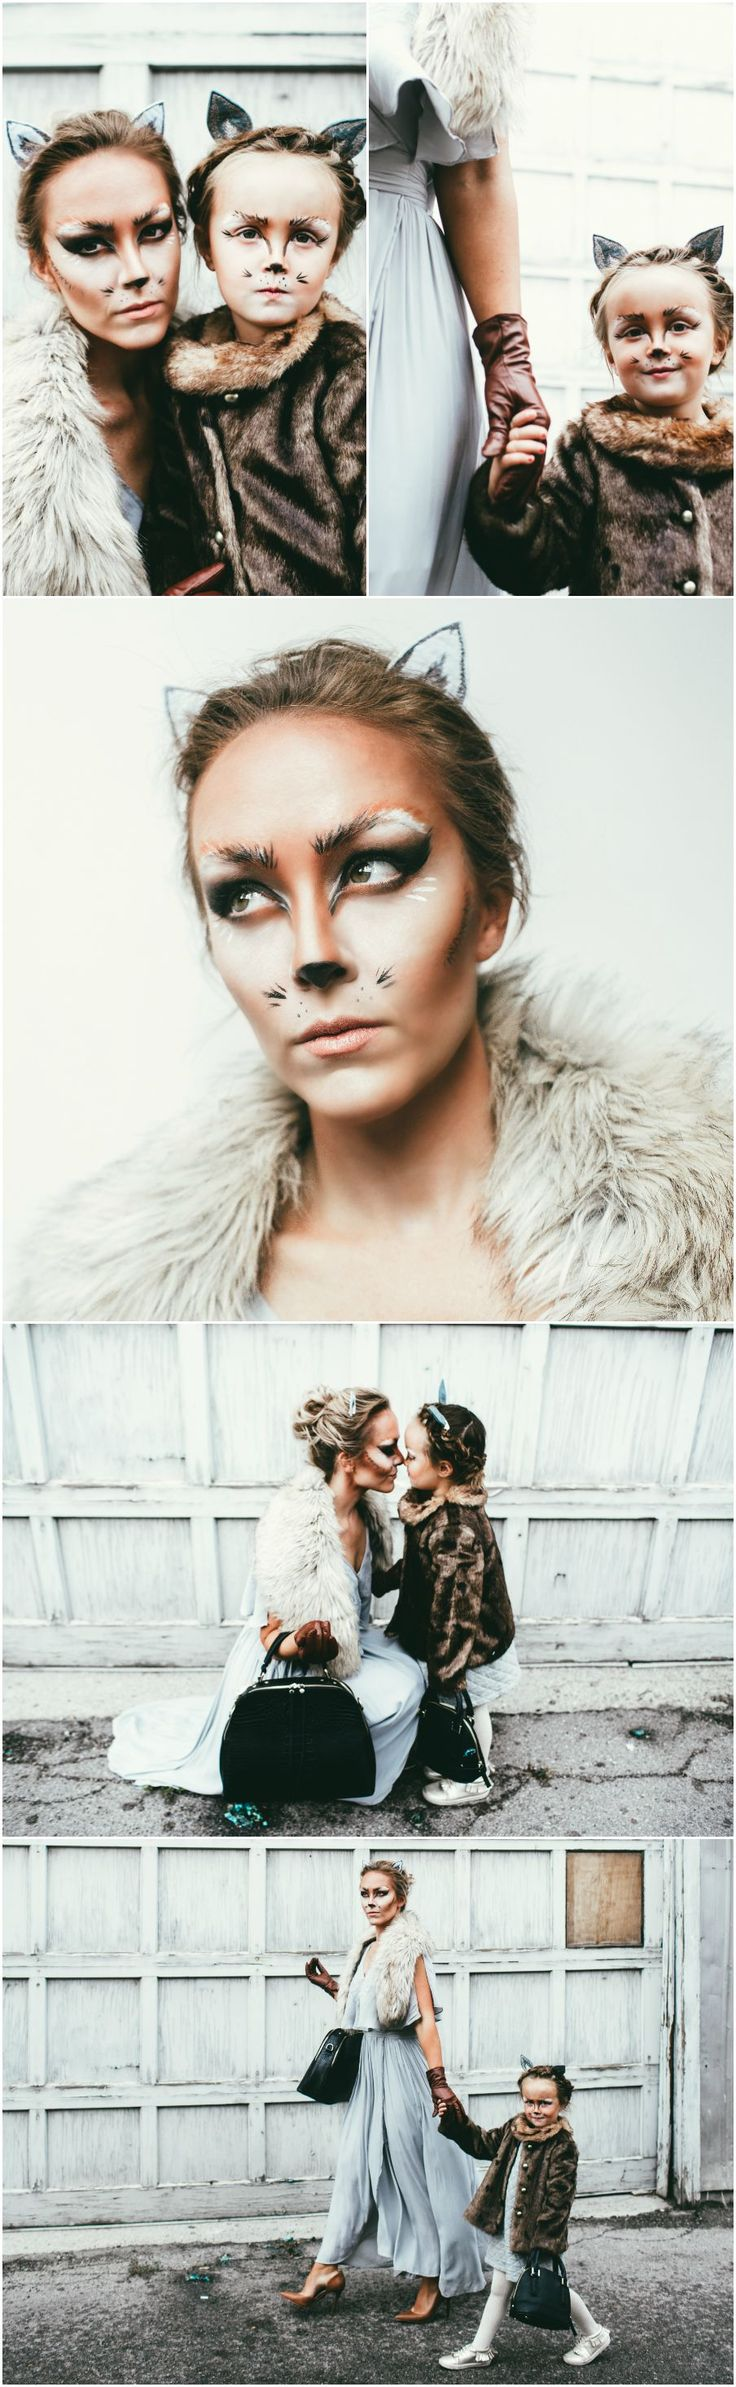 photography | Emmy Lowe Photo Hair | Tatum Wetzel MUA | Jill Marie MUA Styling | Ashley Mann Model | Sadie Jane Fox ears | Recycled Consign Sadie dress: FREE PEOPLE | faux fur shawl: ANTHROPOLOGY |…